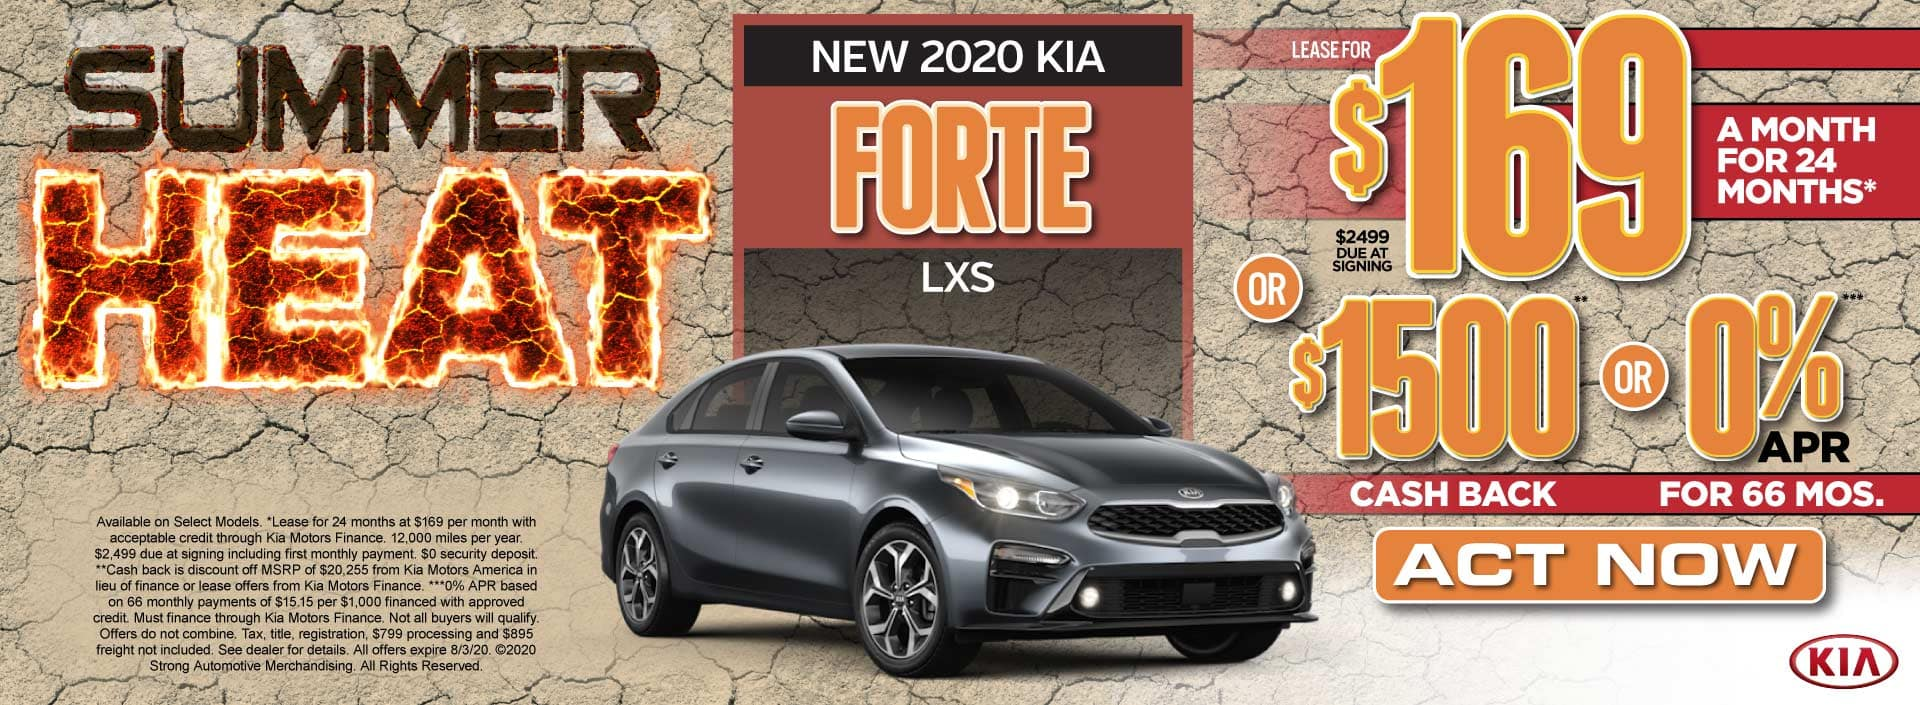 New 2020 Kia Forte only $169/mo or $1500 Cash Back - Act Now